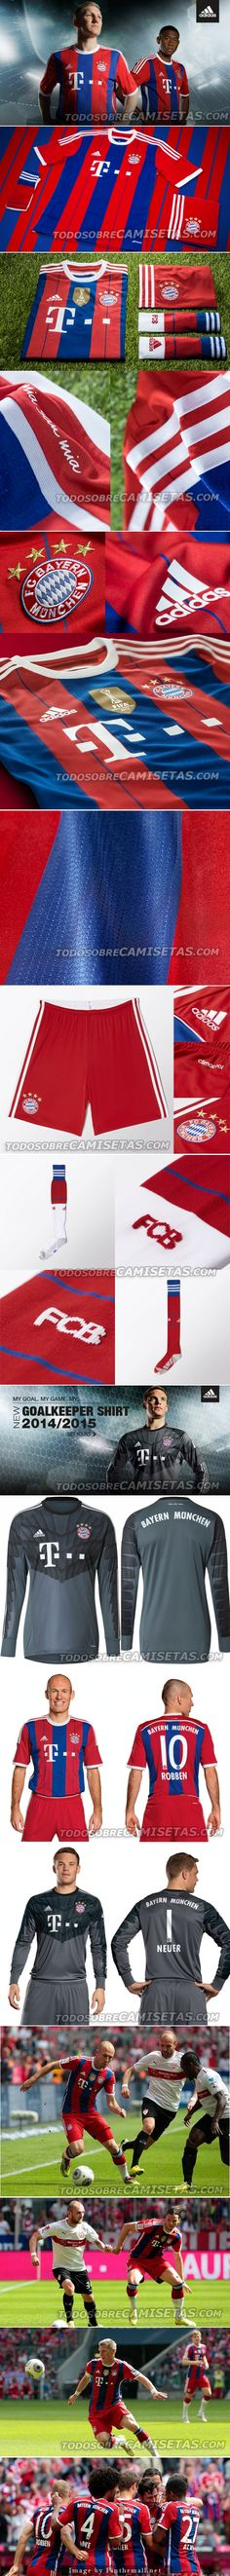 Official F.C. Bayern Munich Home Kit 2014/15